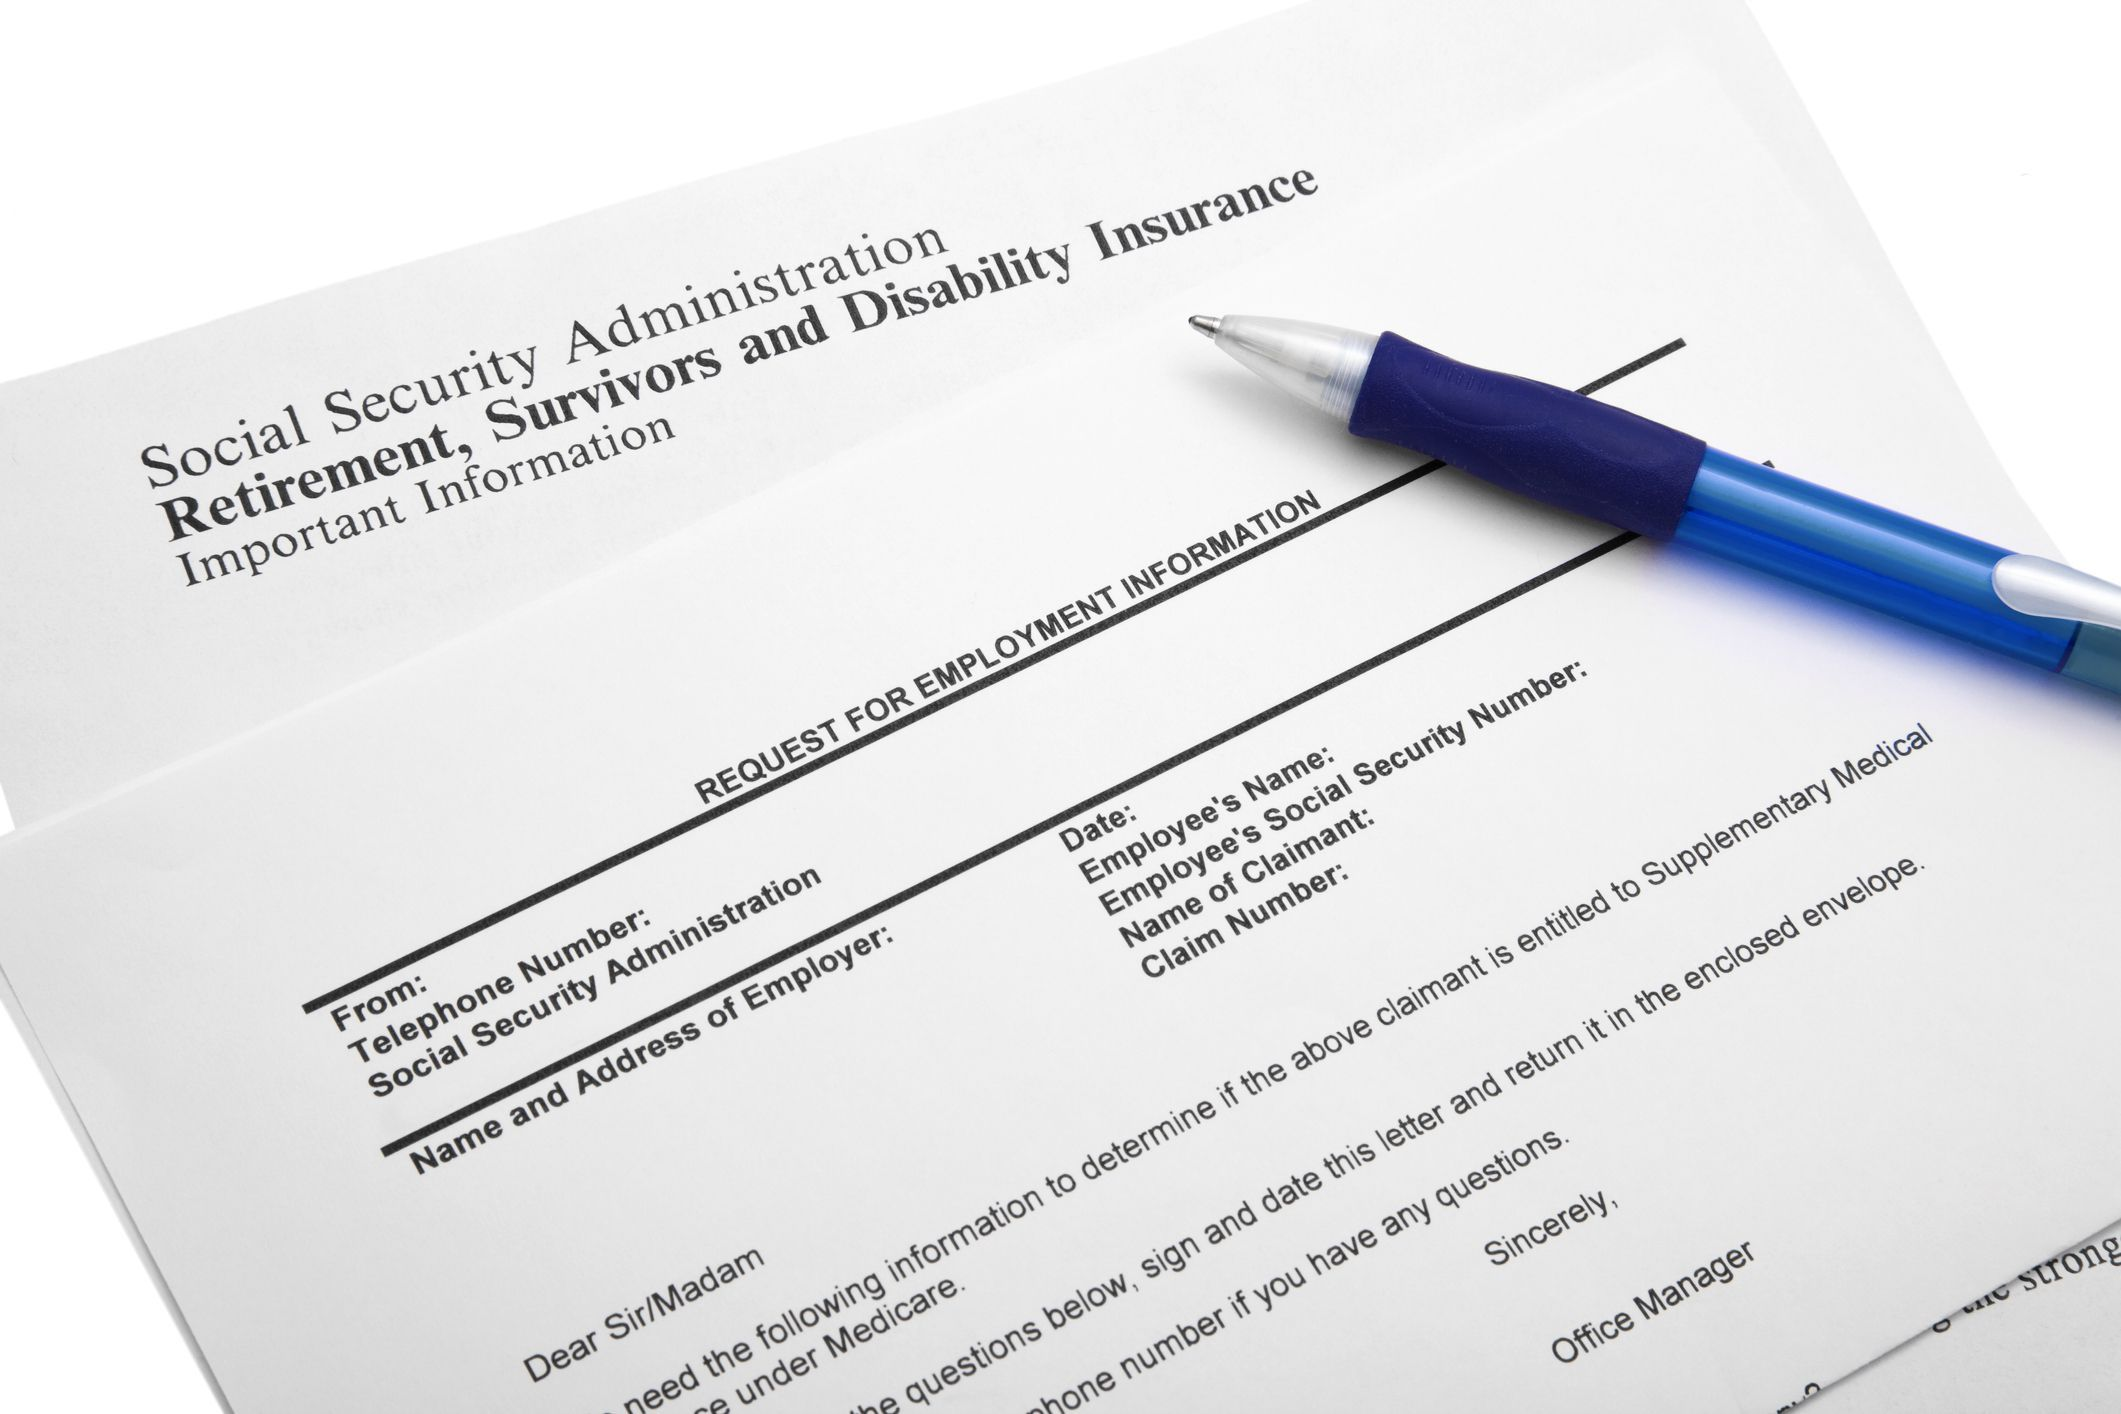 When to Apply for Social Security Retirement Benefits